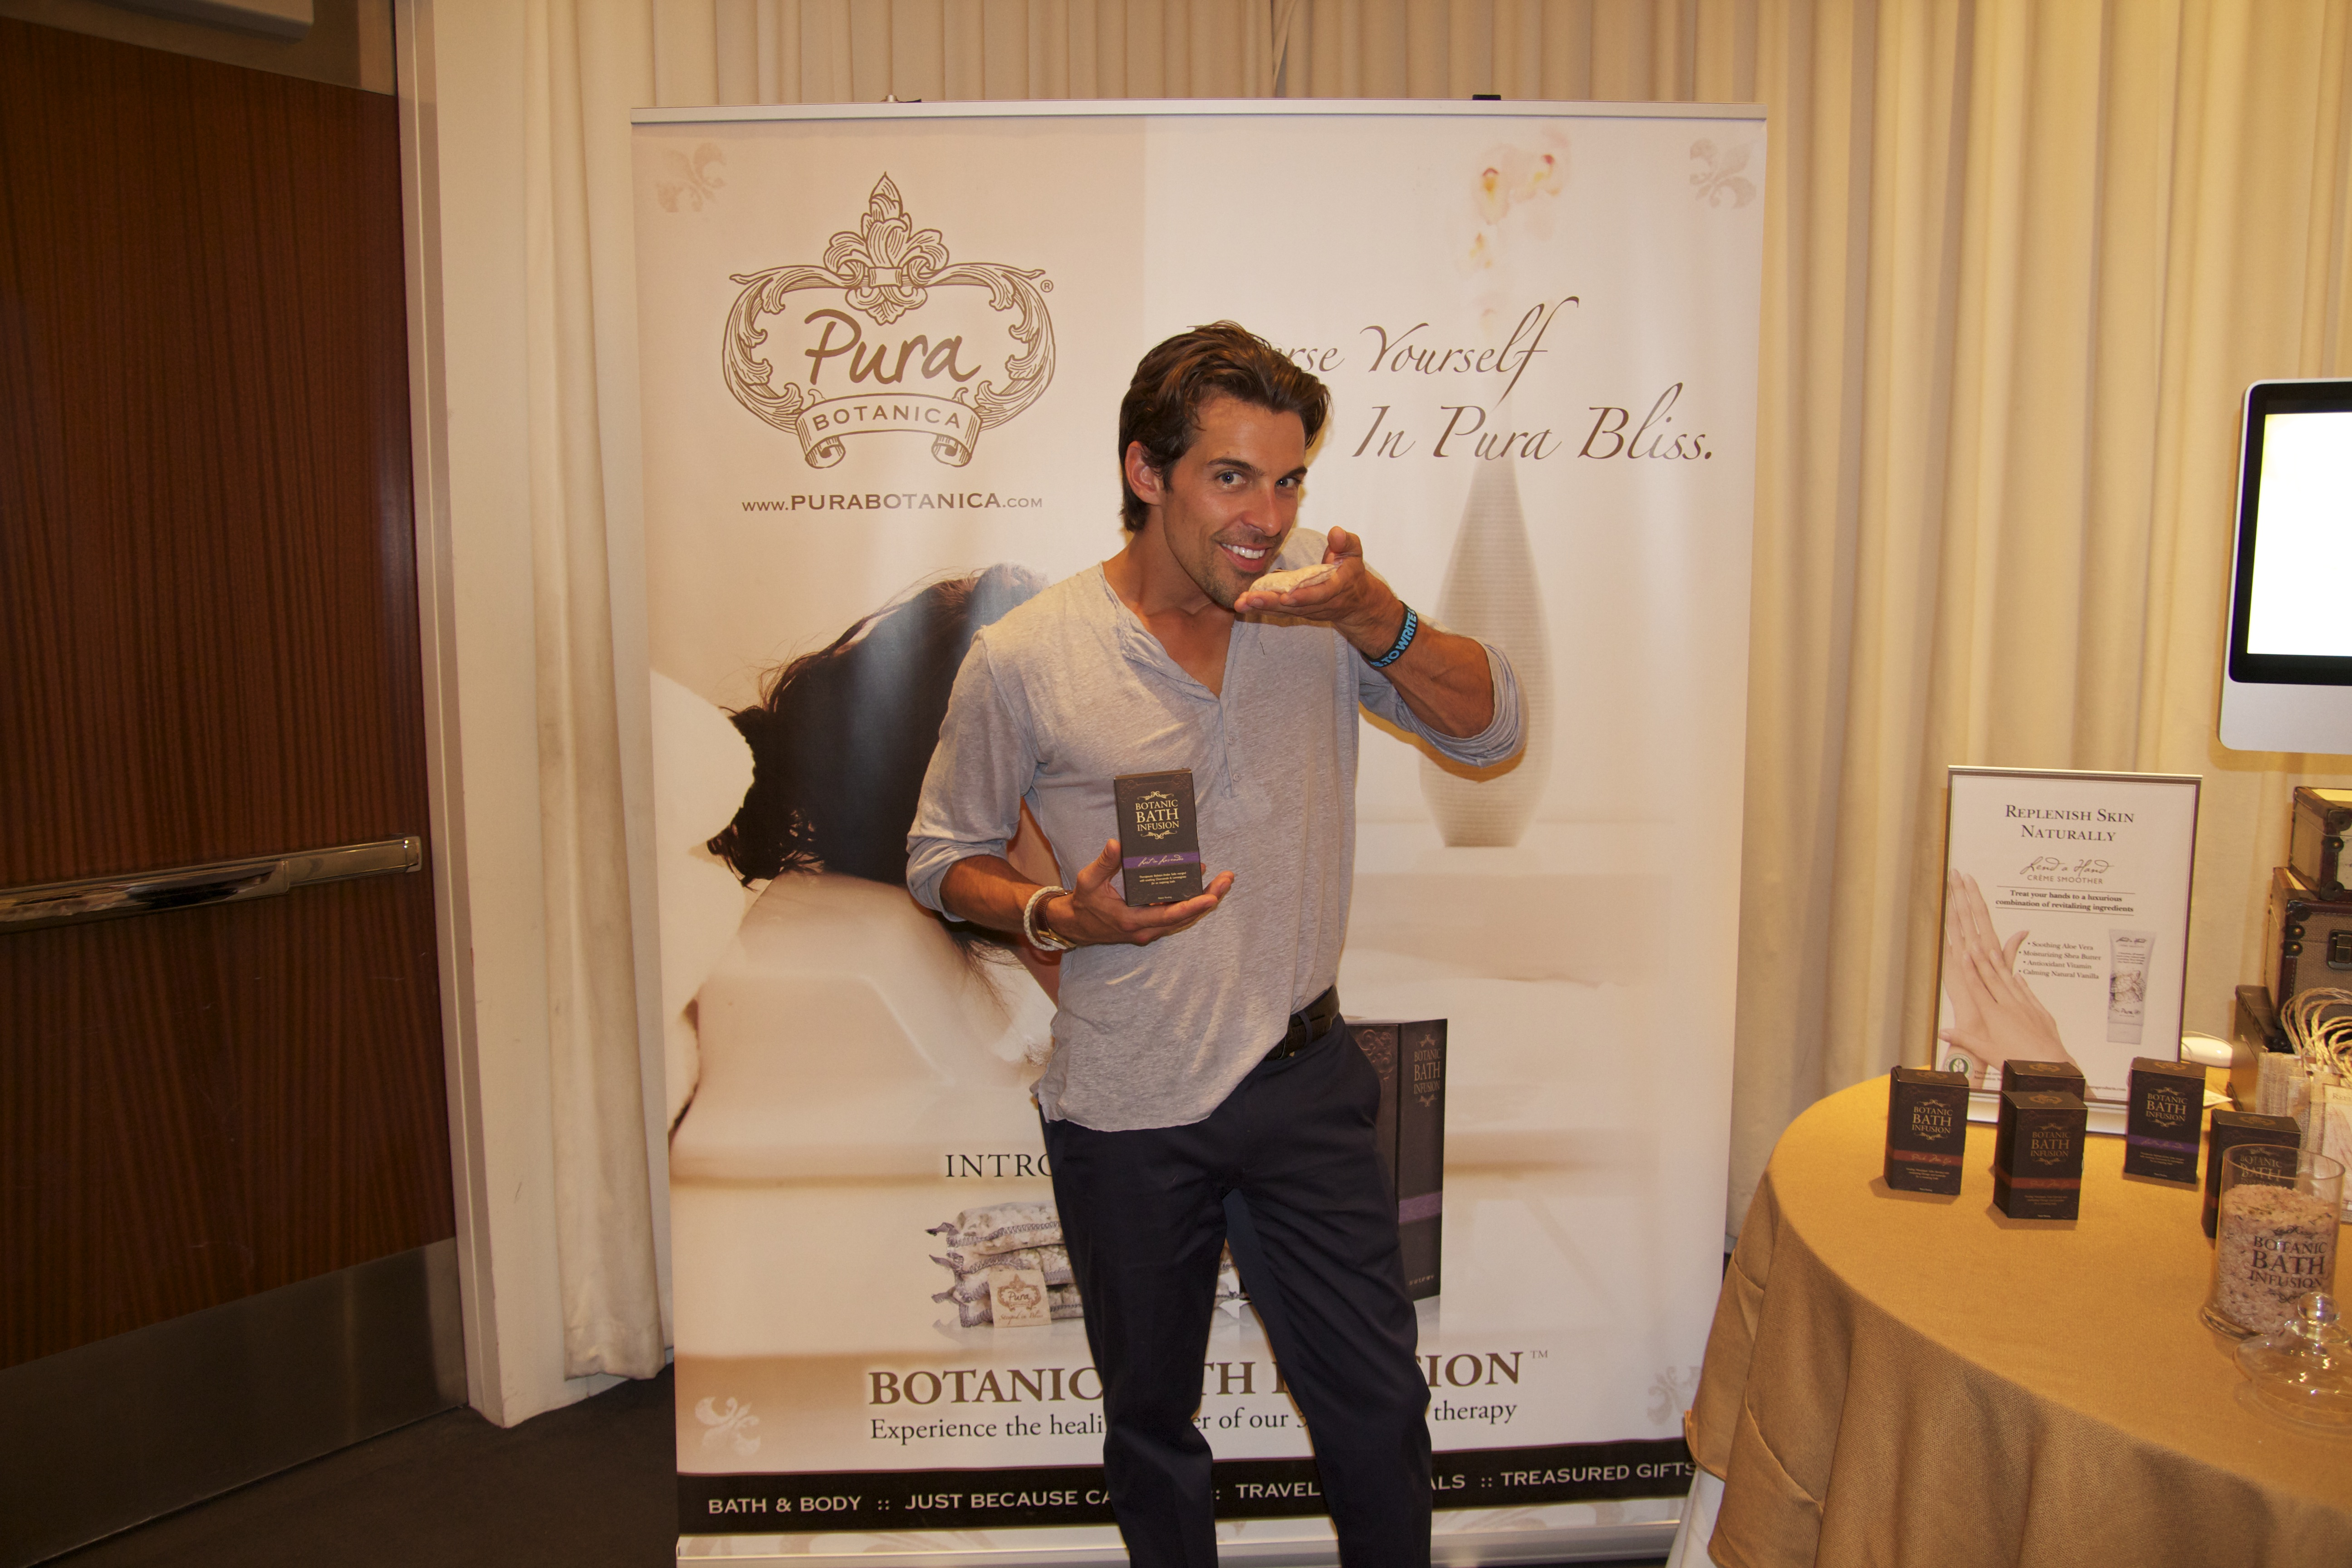 Madison Hildebrand of Bravo TV's Million Dollar Listing loves Pura Botanica products.